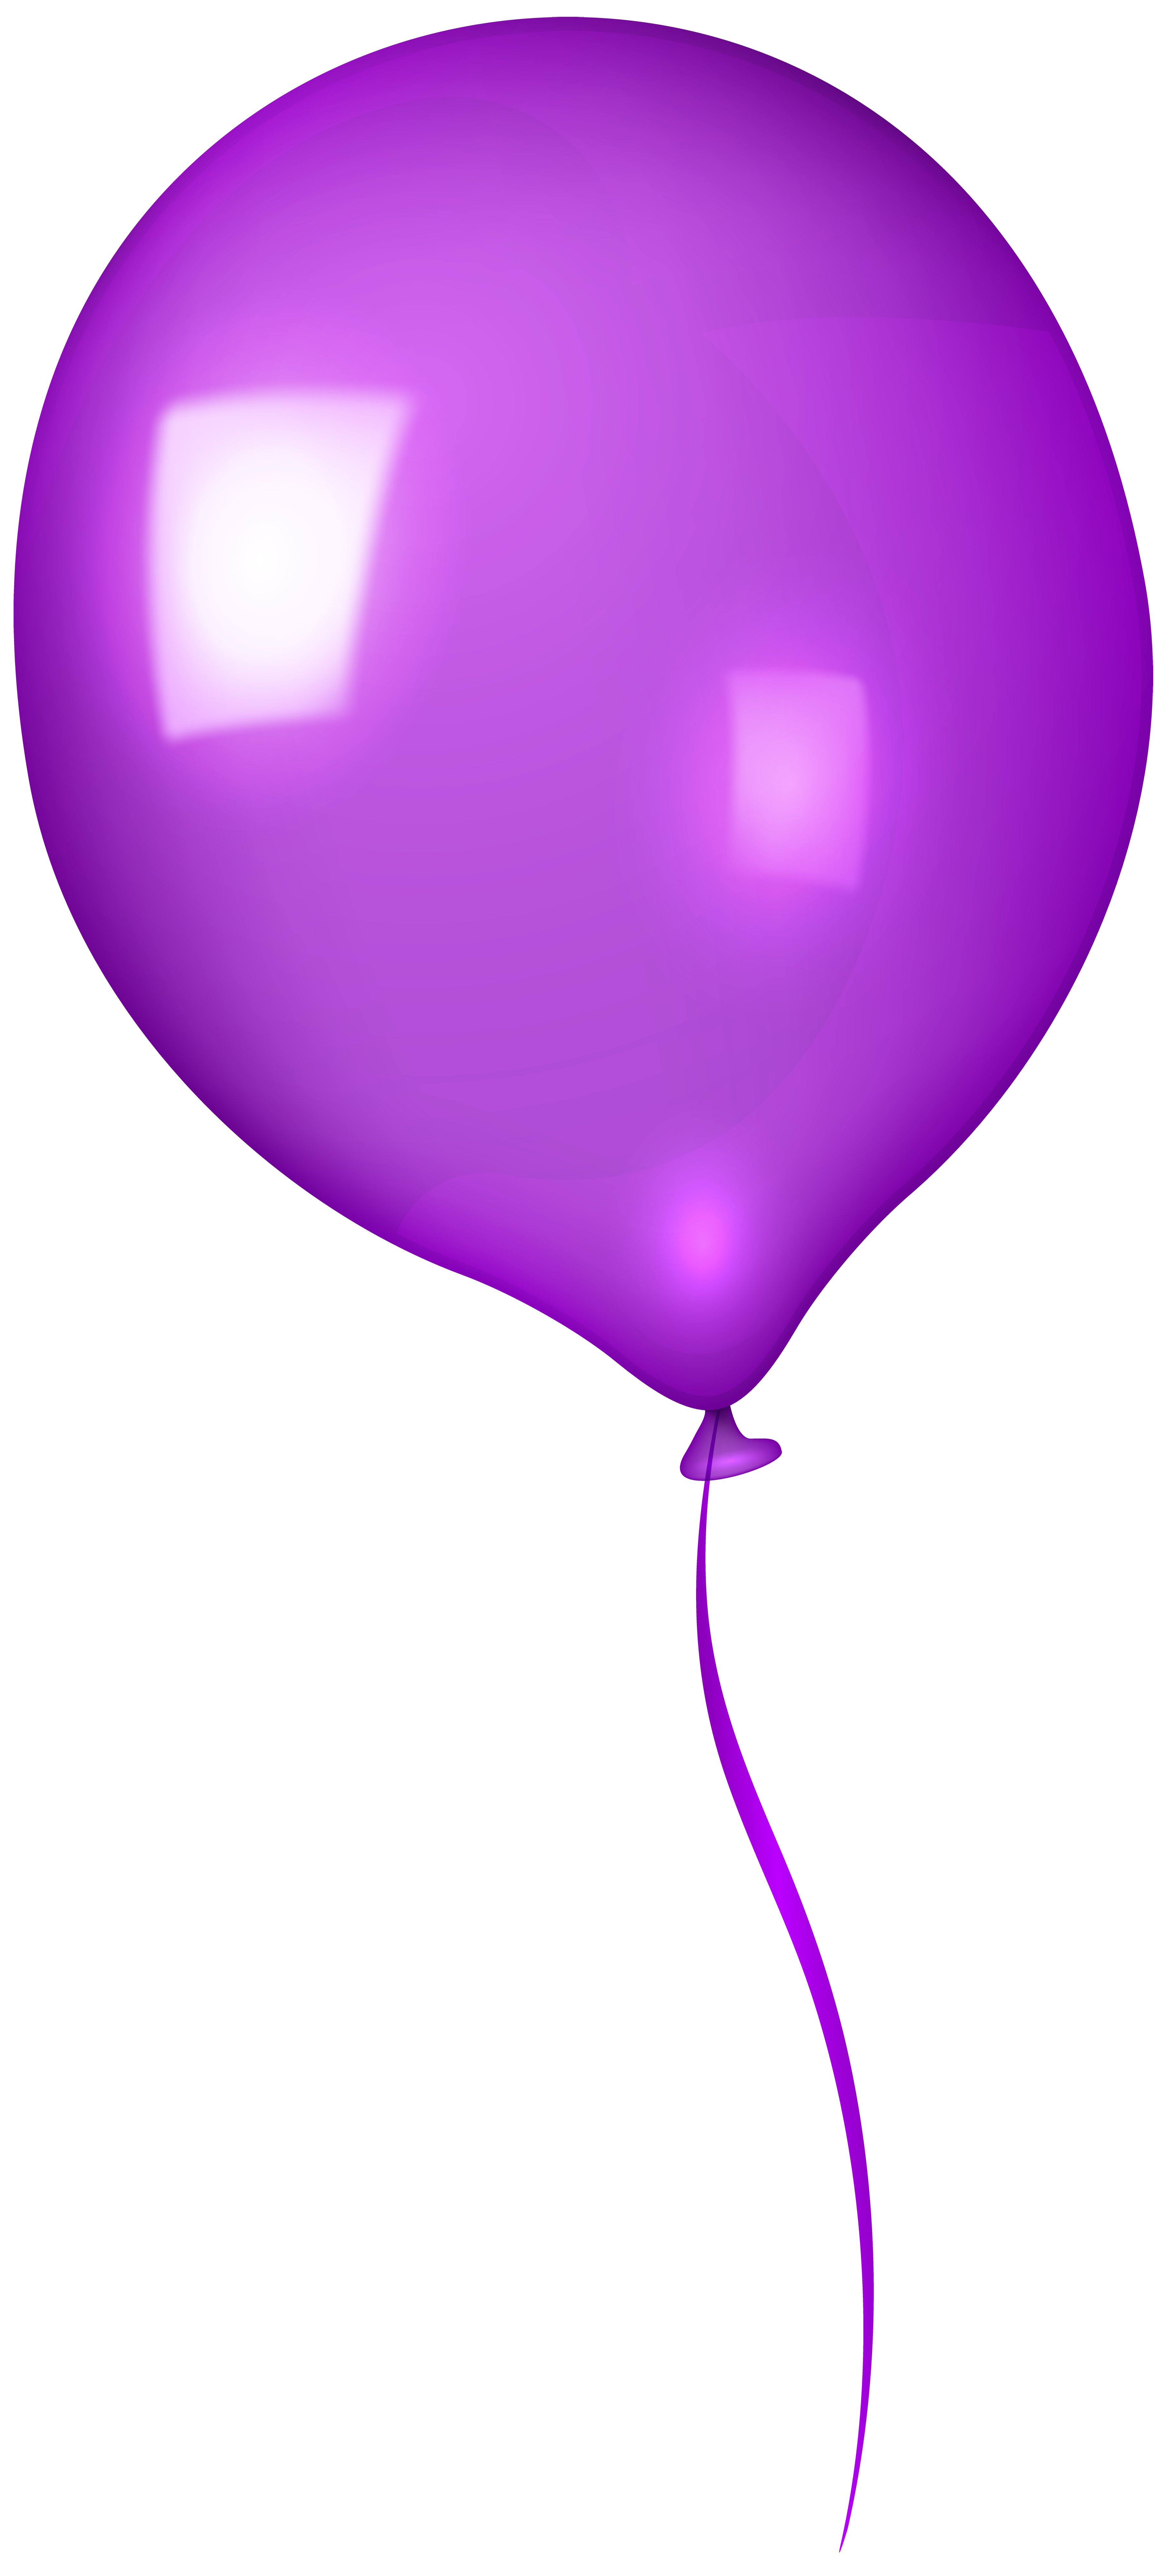 Violet balloon clipart image black and white download Balloons clipart violet for free download and use images in ... image black and white download